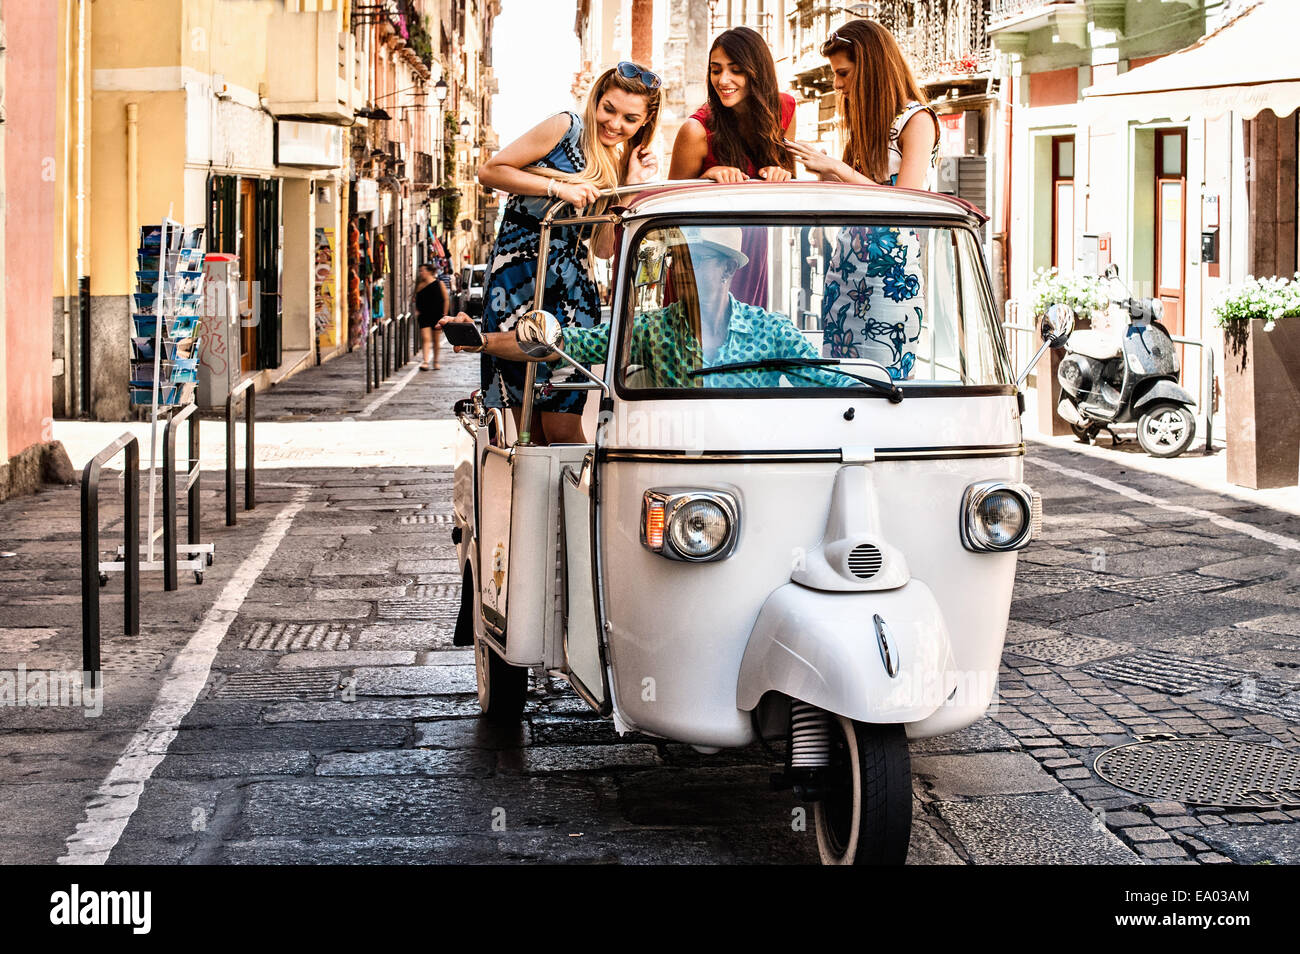 Three young women standing up in open back seat of Italian taxi, Cagliari, Sardinia, Italy - Stock Image